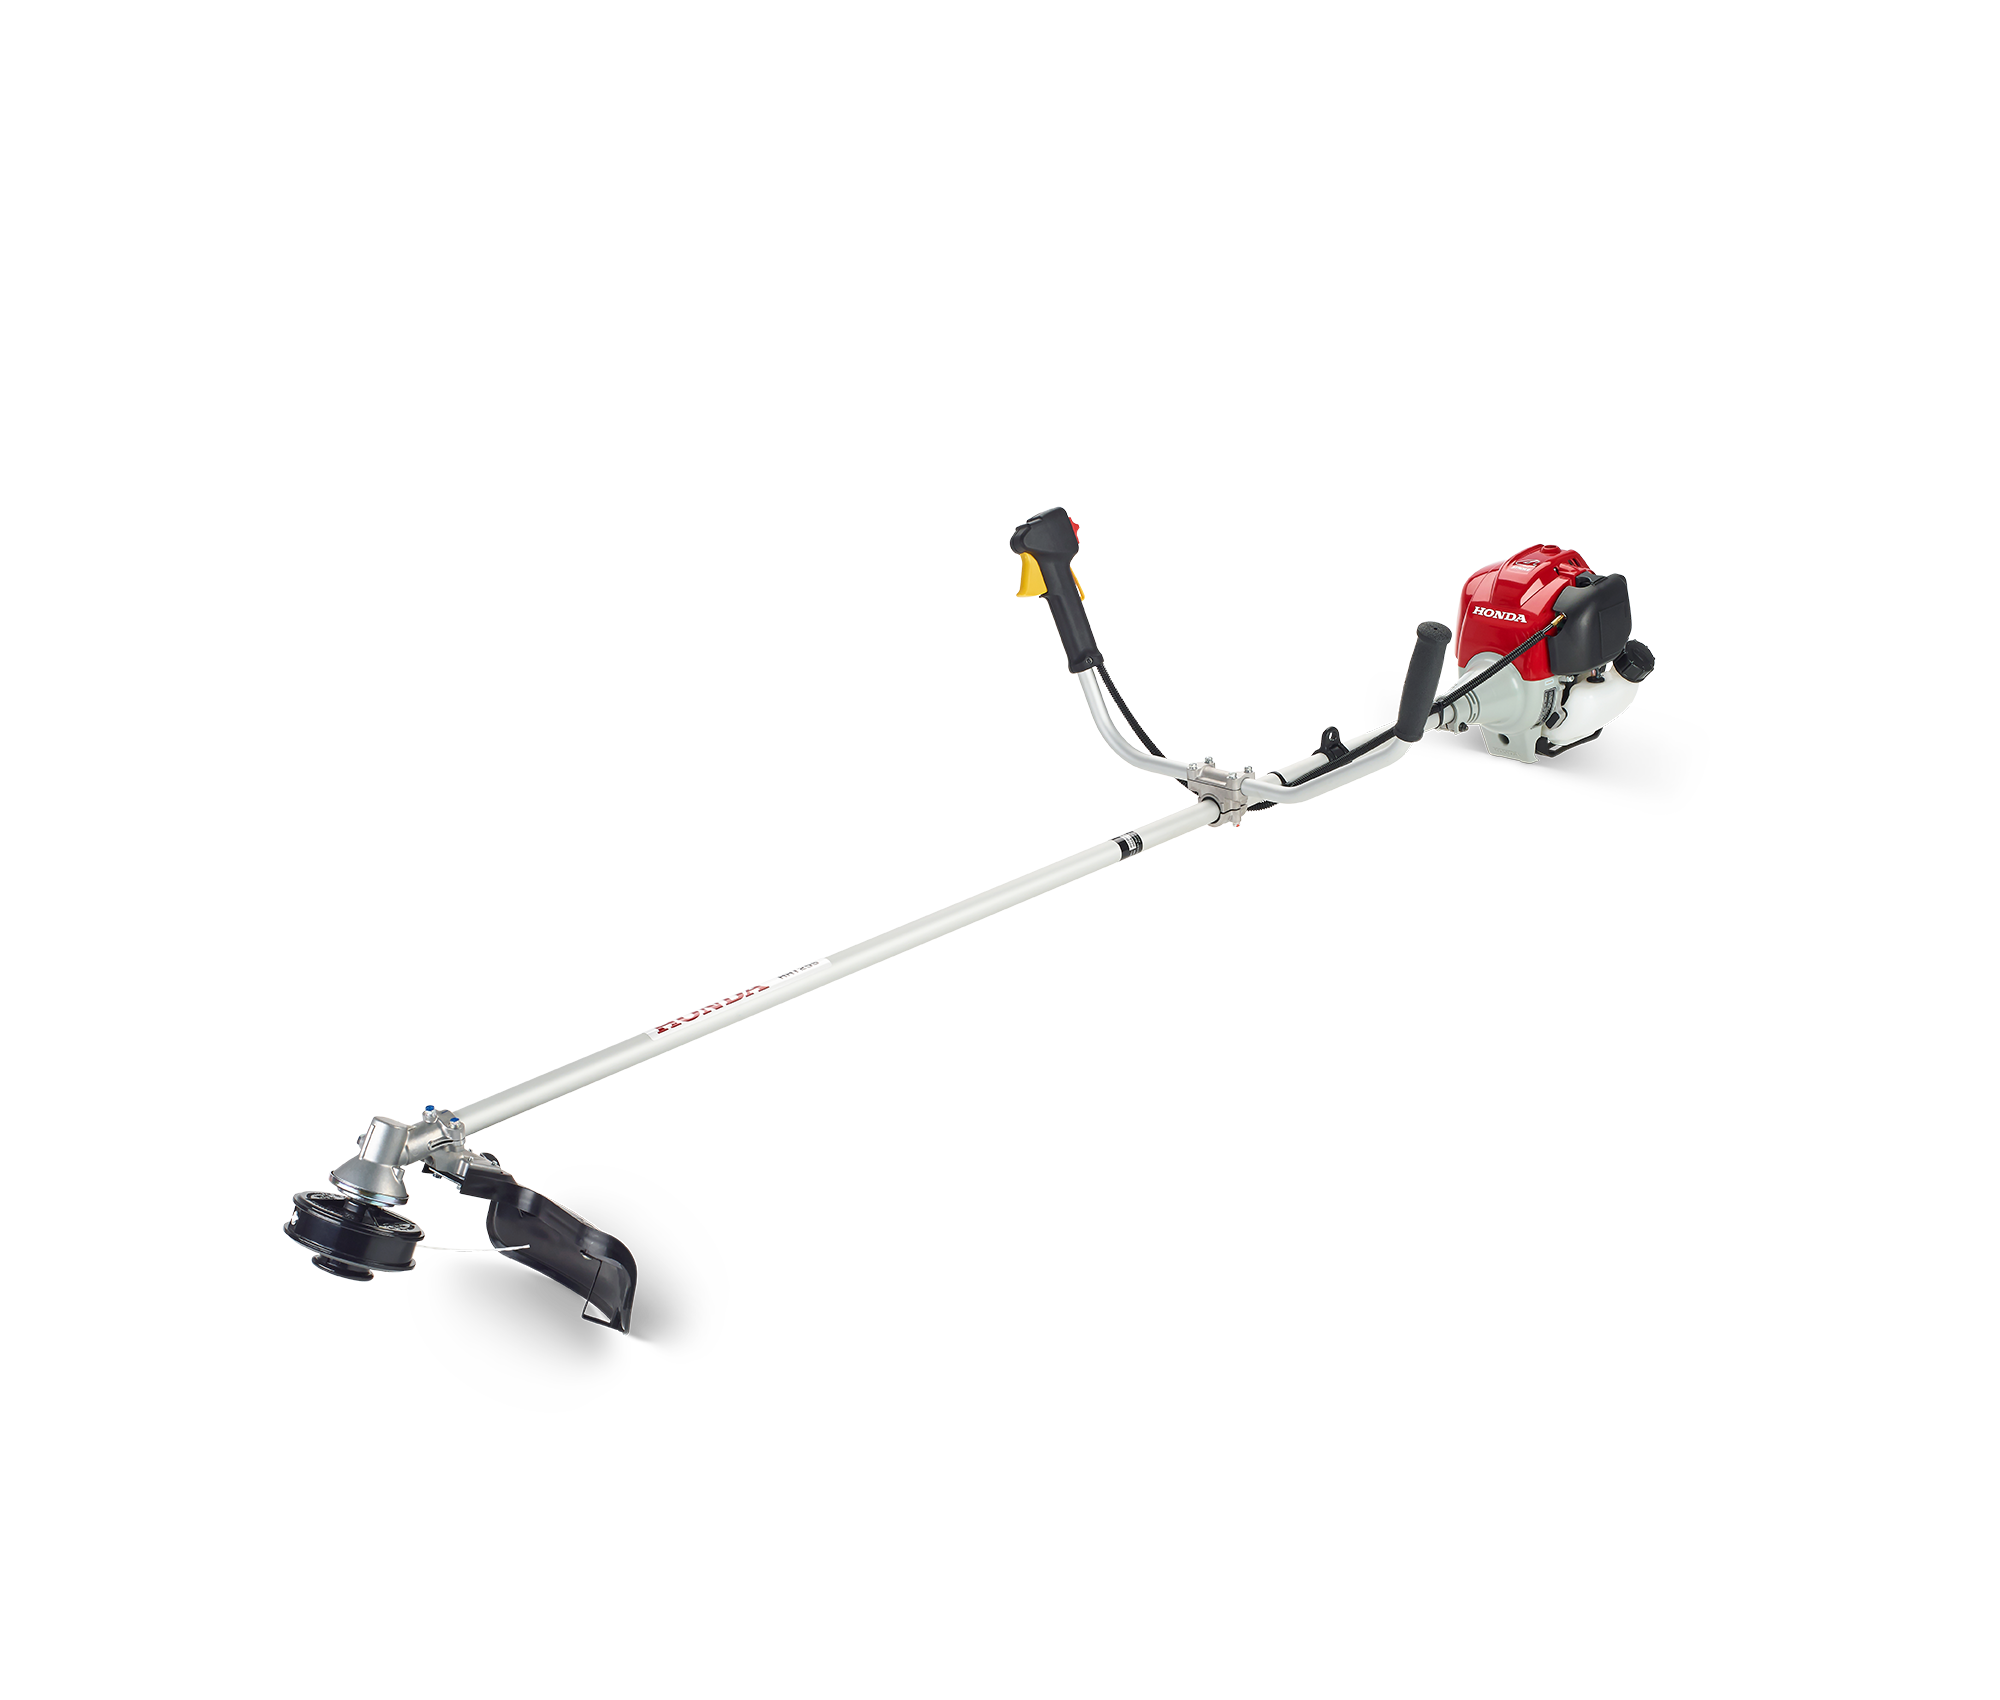 Image of the U Handle 25 cc brush cutter